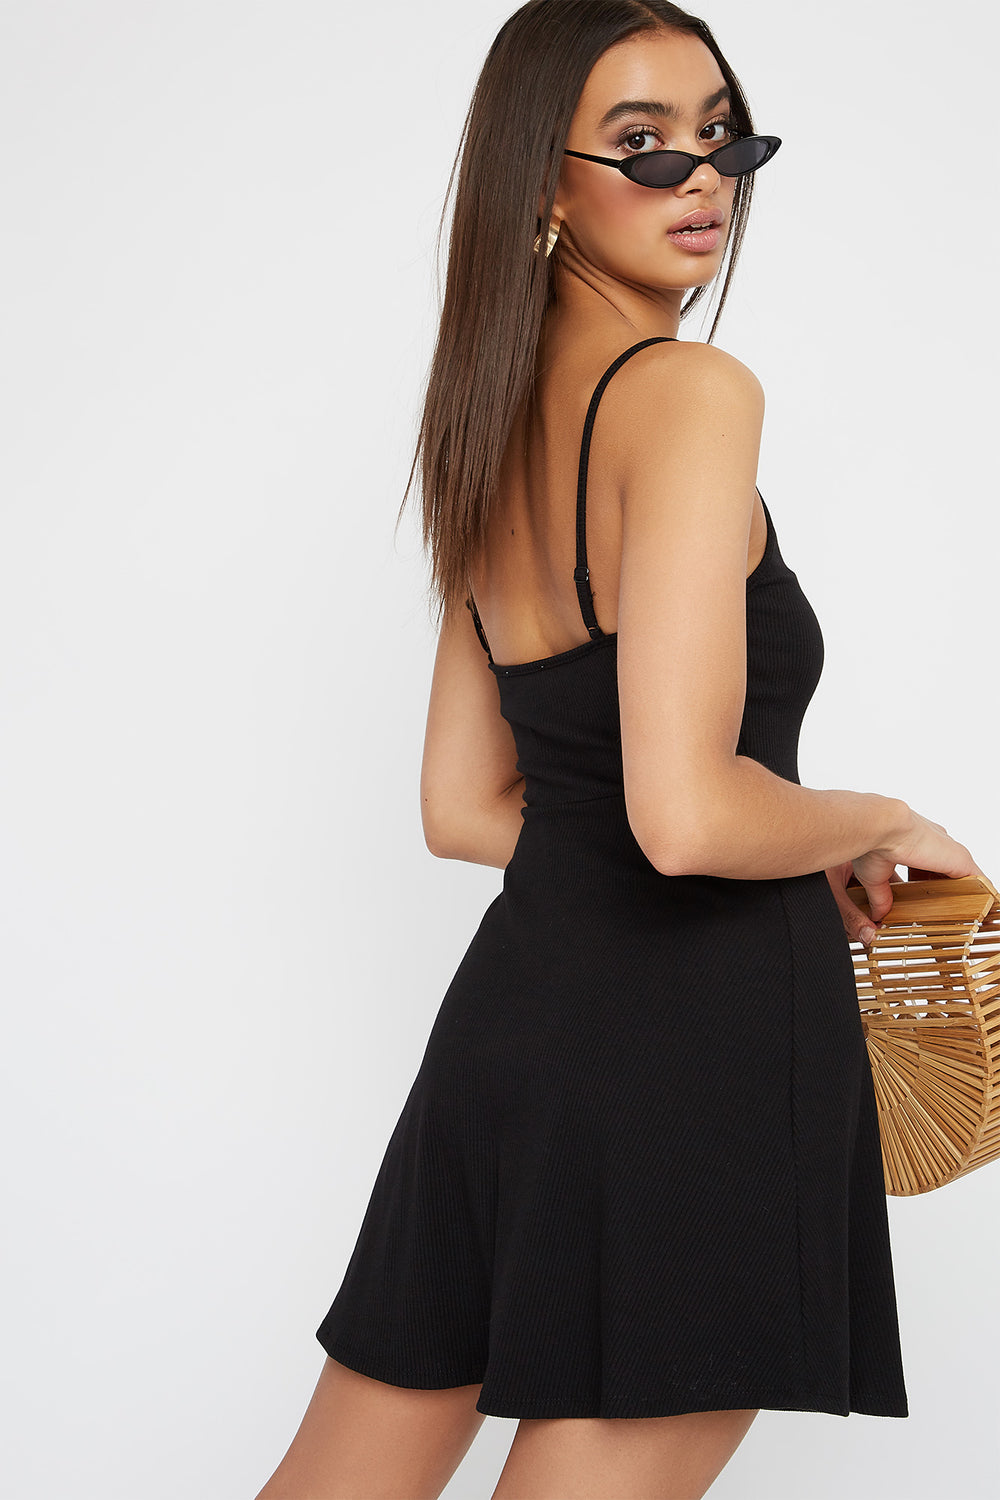 Women Dresses Ribbed V-Neck Button Sleeveless Skater Dress Black